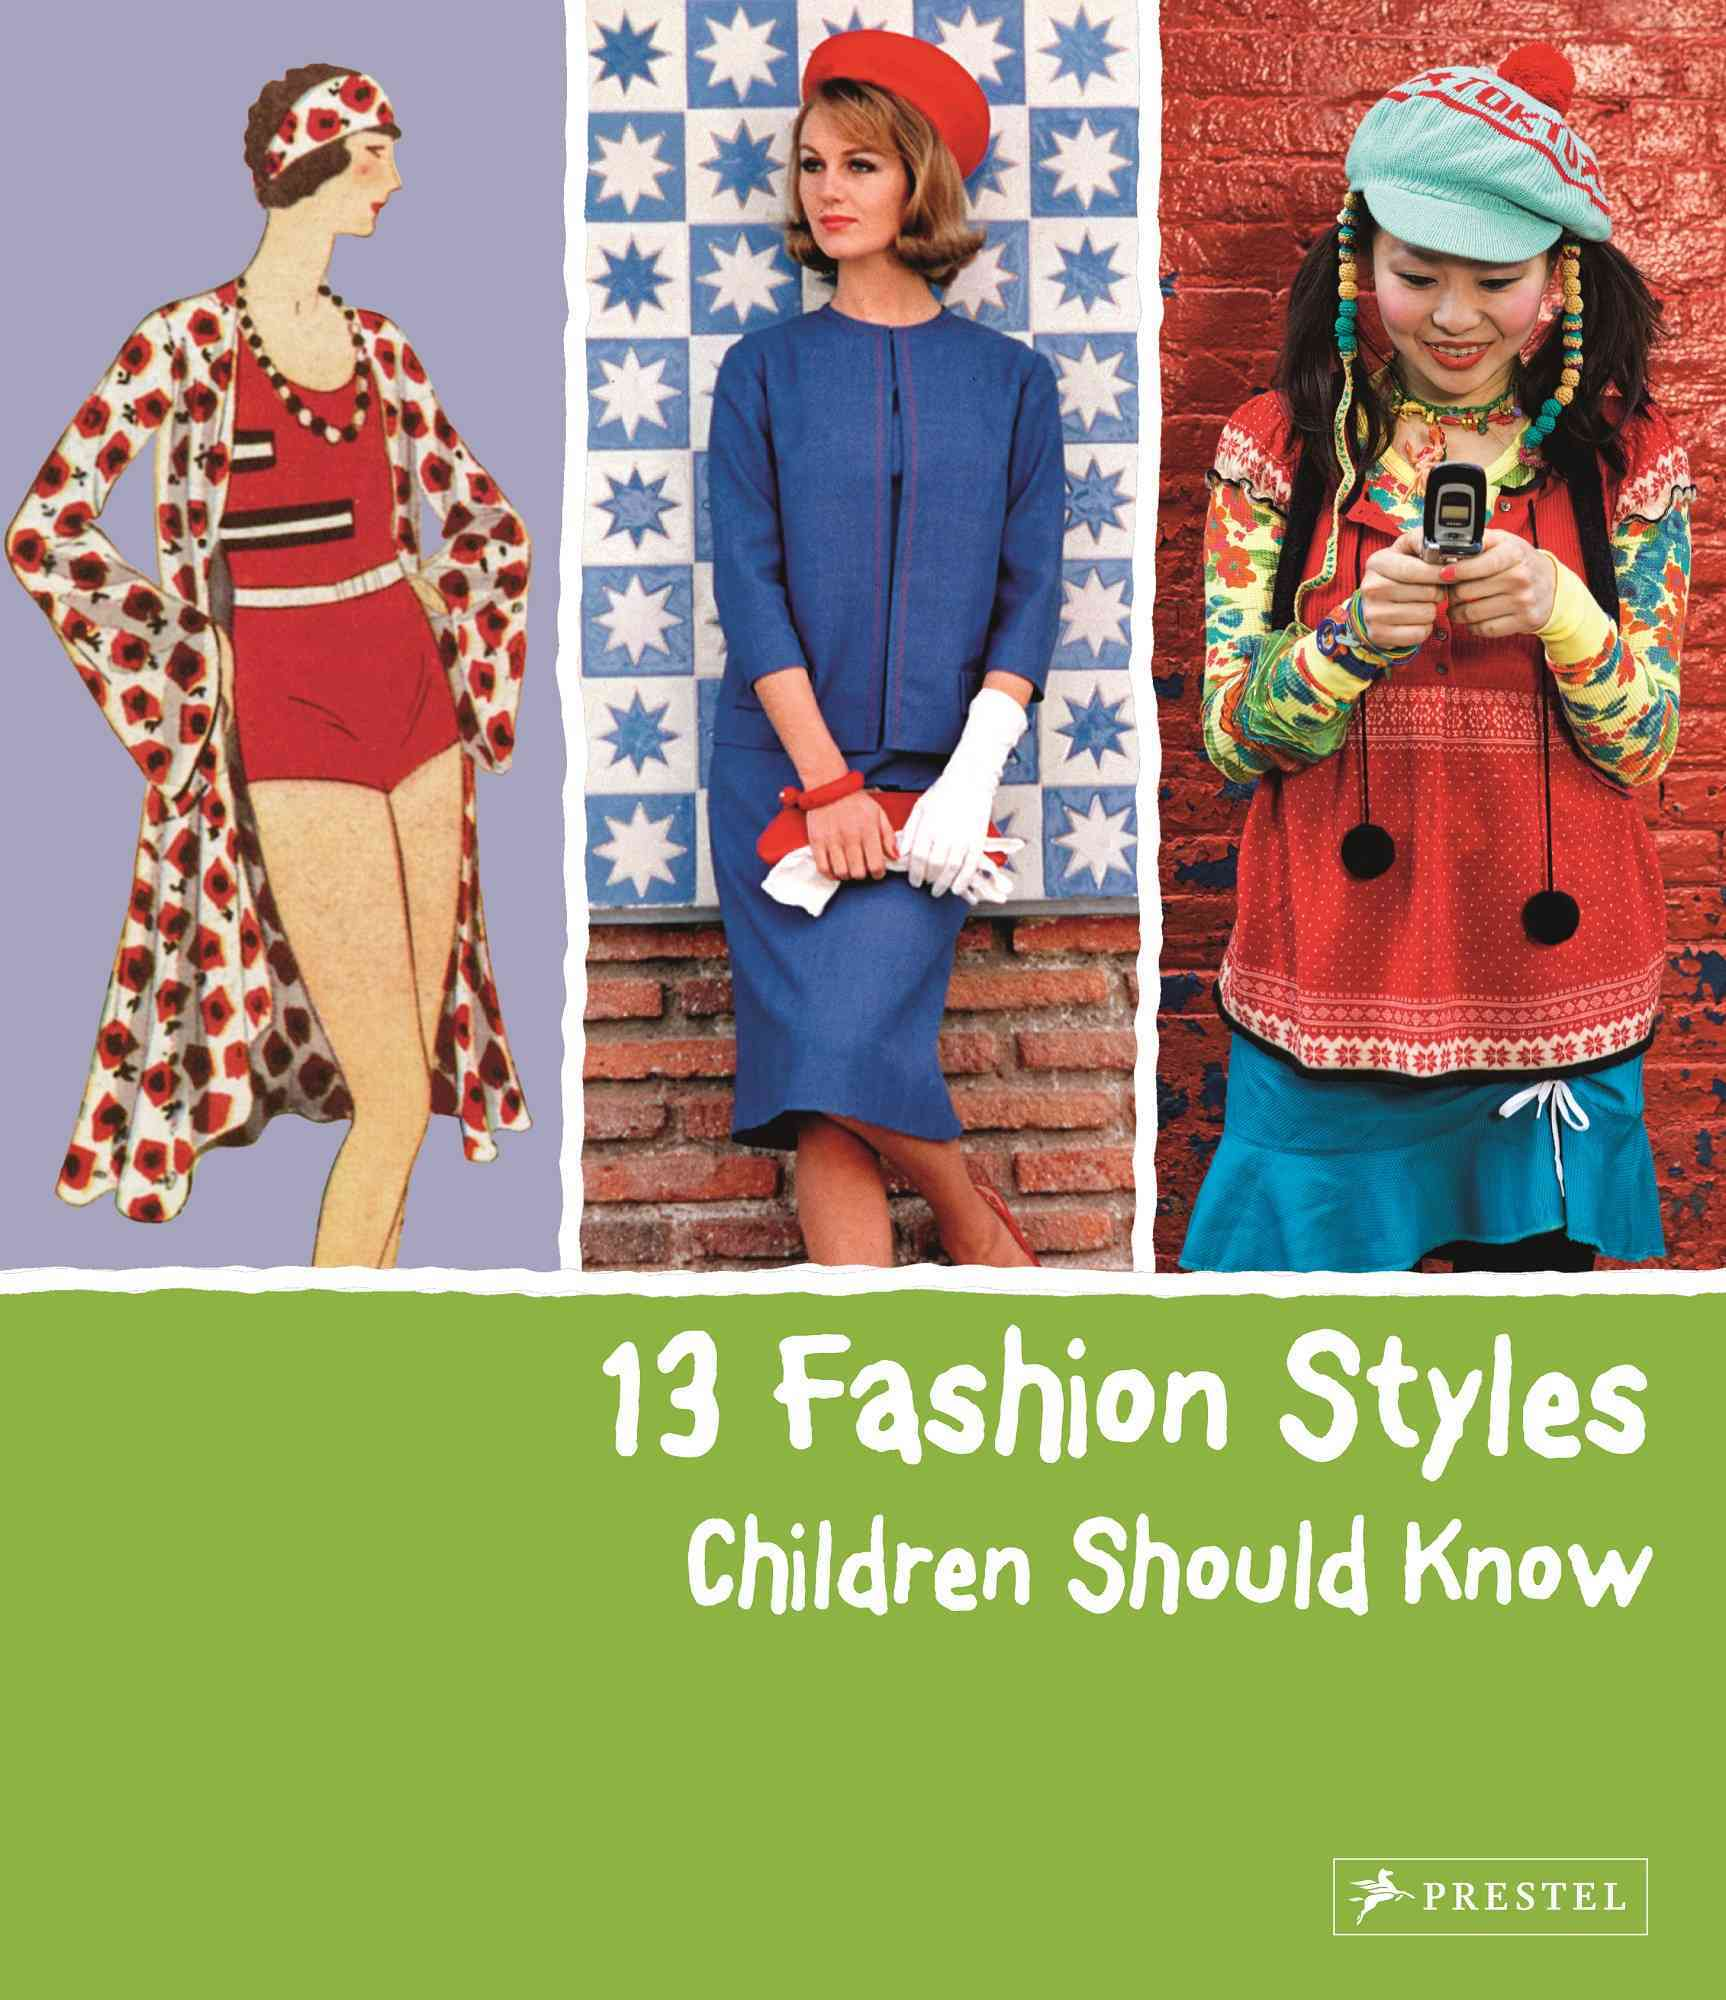 13 Fashion Styles Children Should Know By Werle, Simone